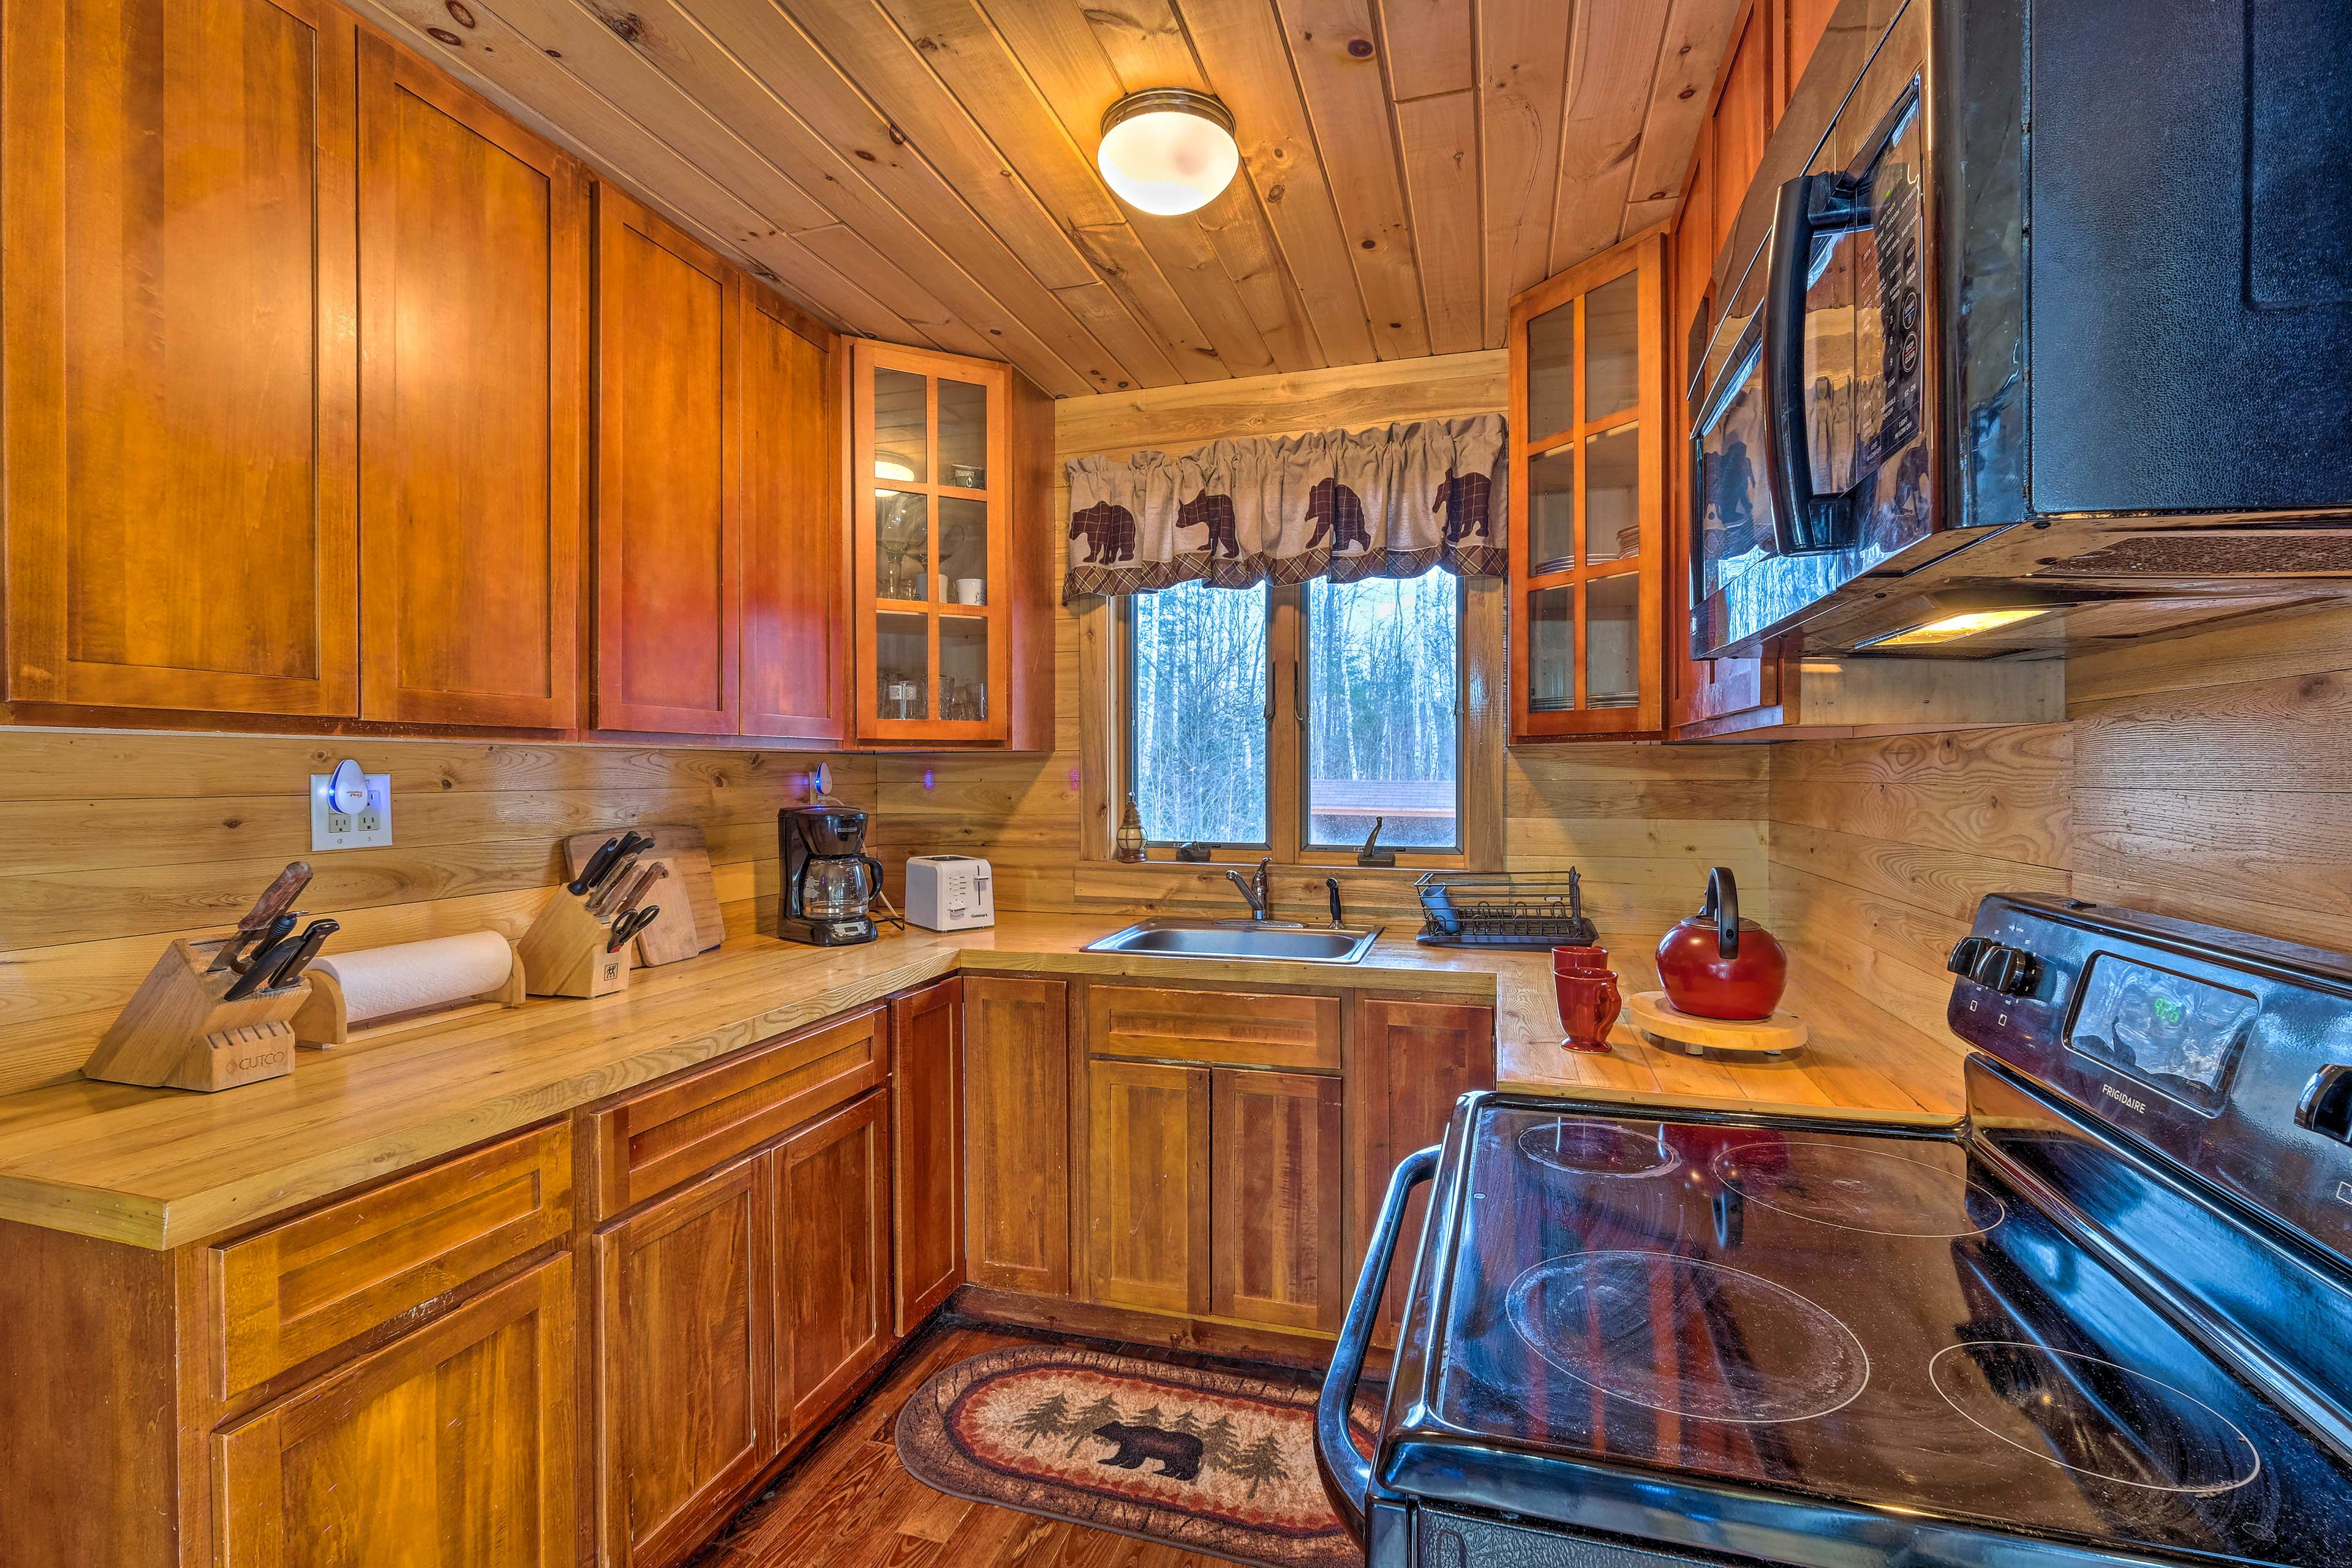 Whip up a meal in the well-equipped kitchen.